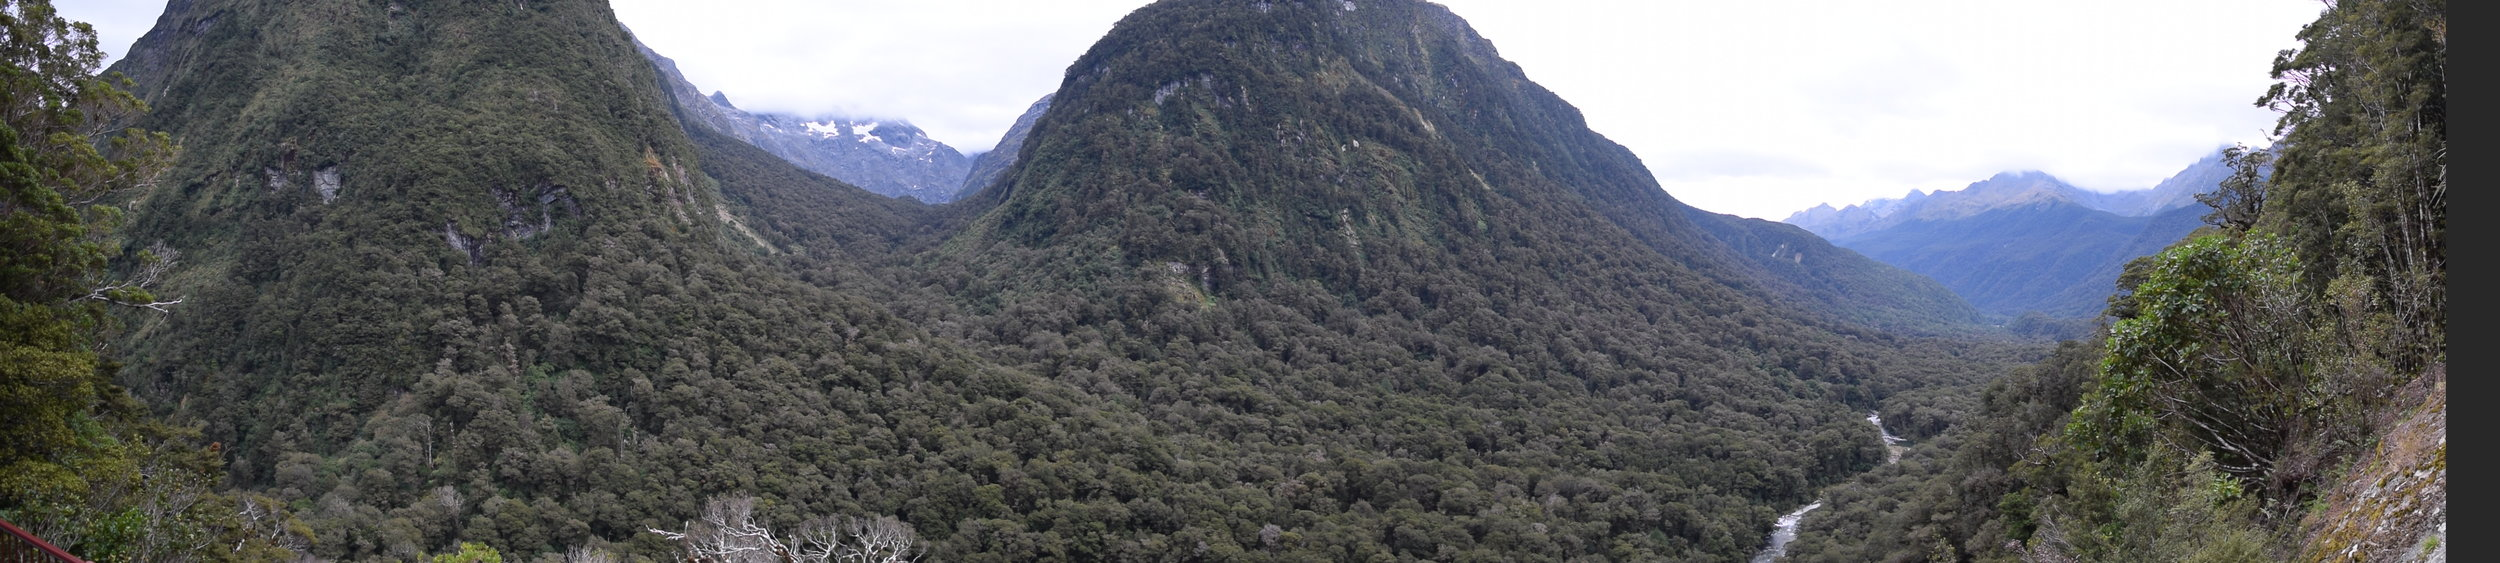 On the road, on the way to Milford Sound